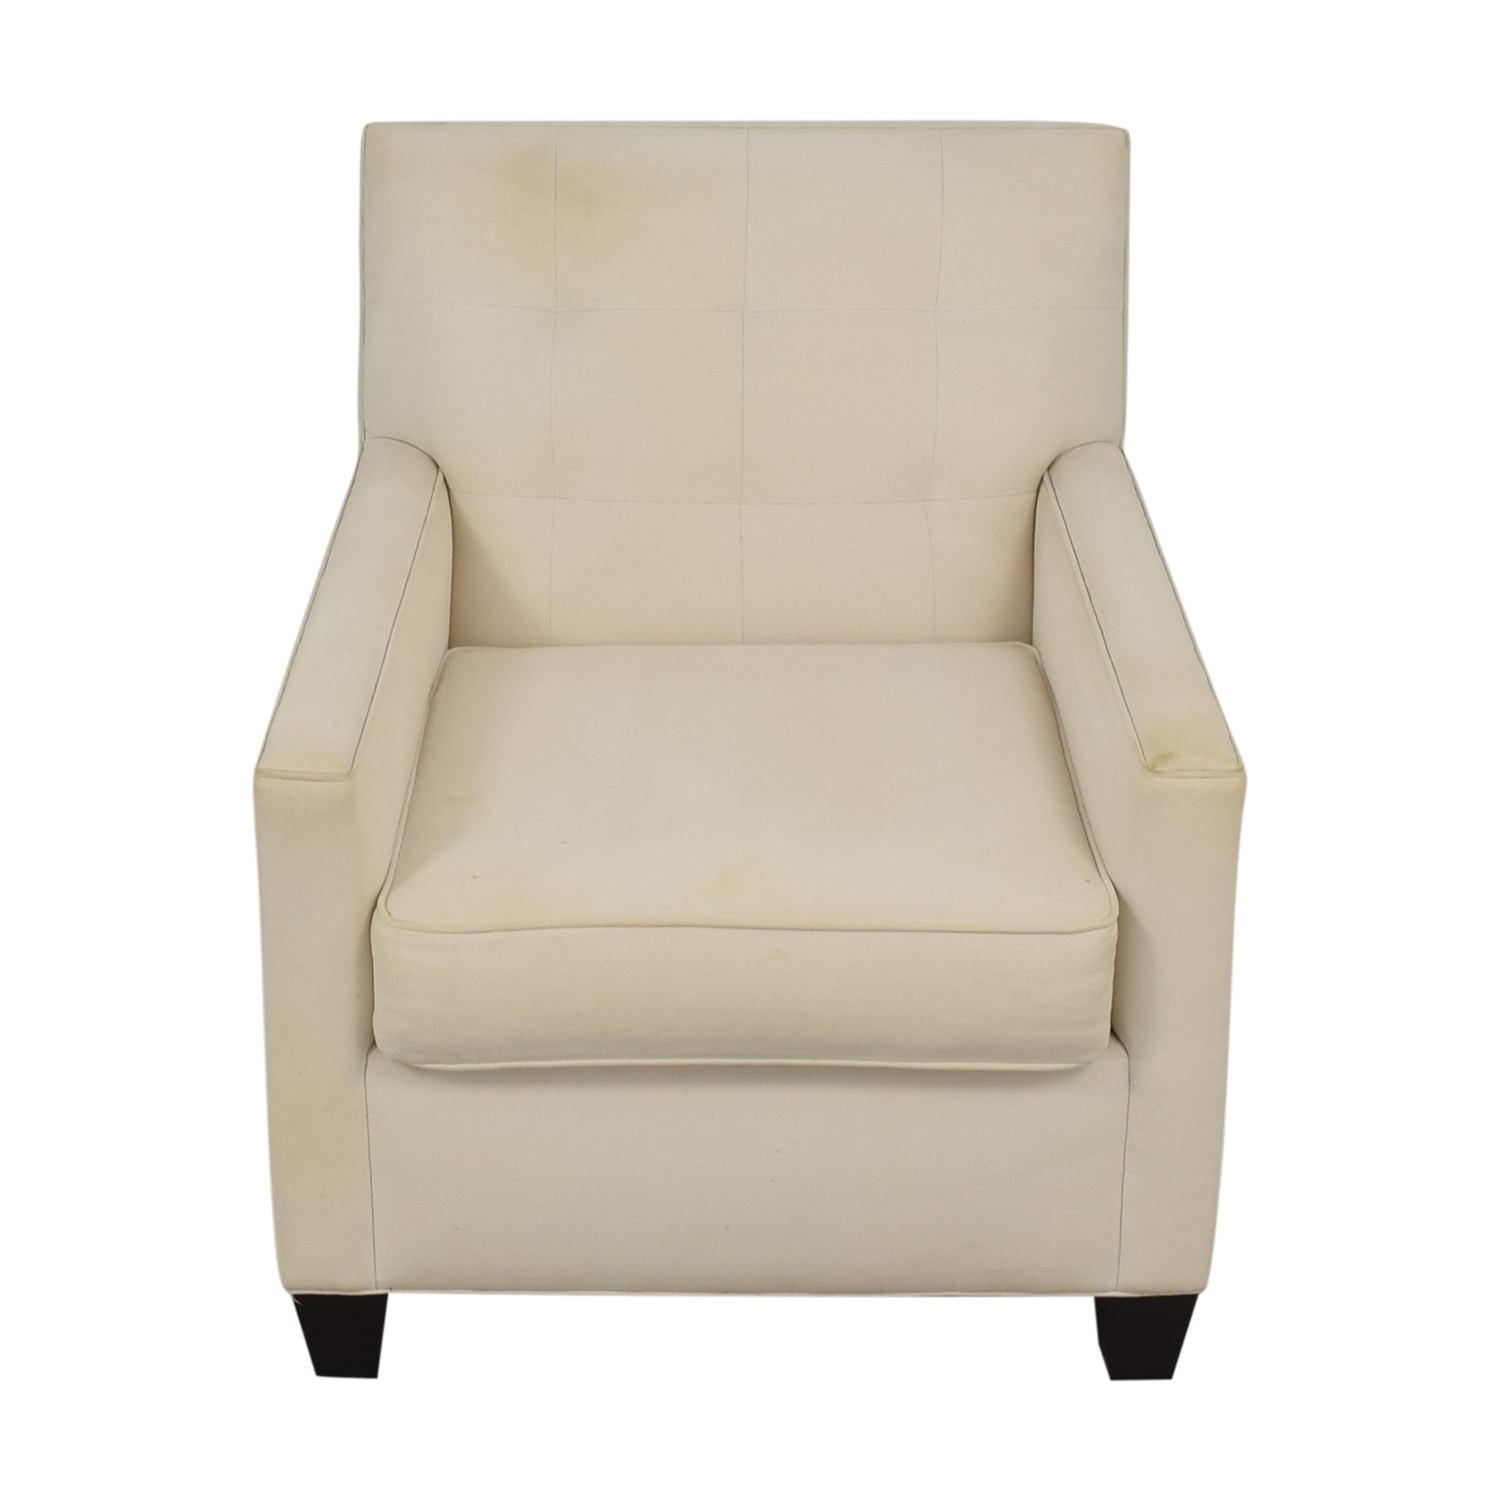 Nathan Anthony Nathan Anthony Tufted Lounge Chair coupon